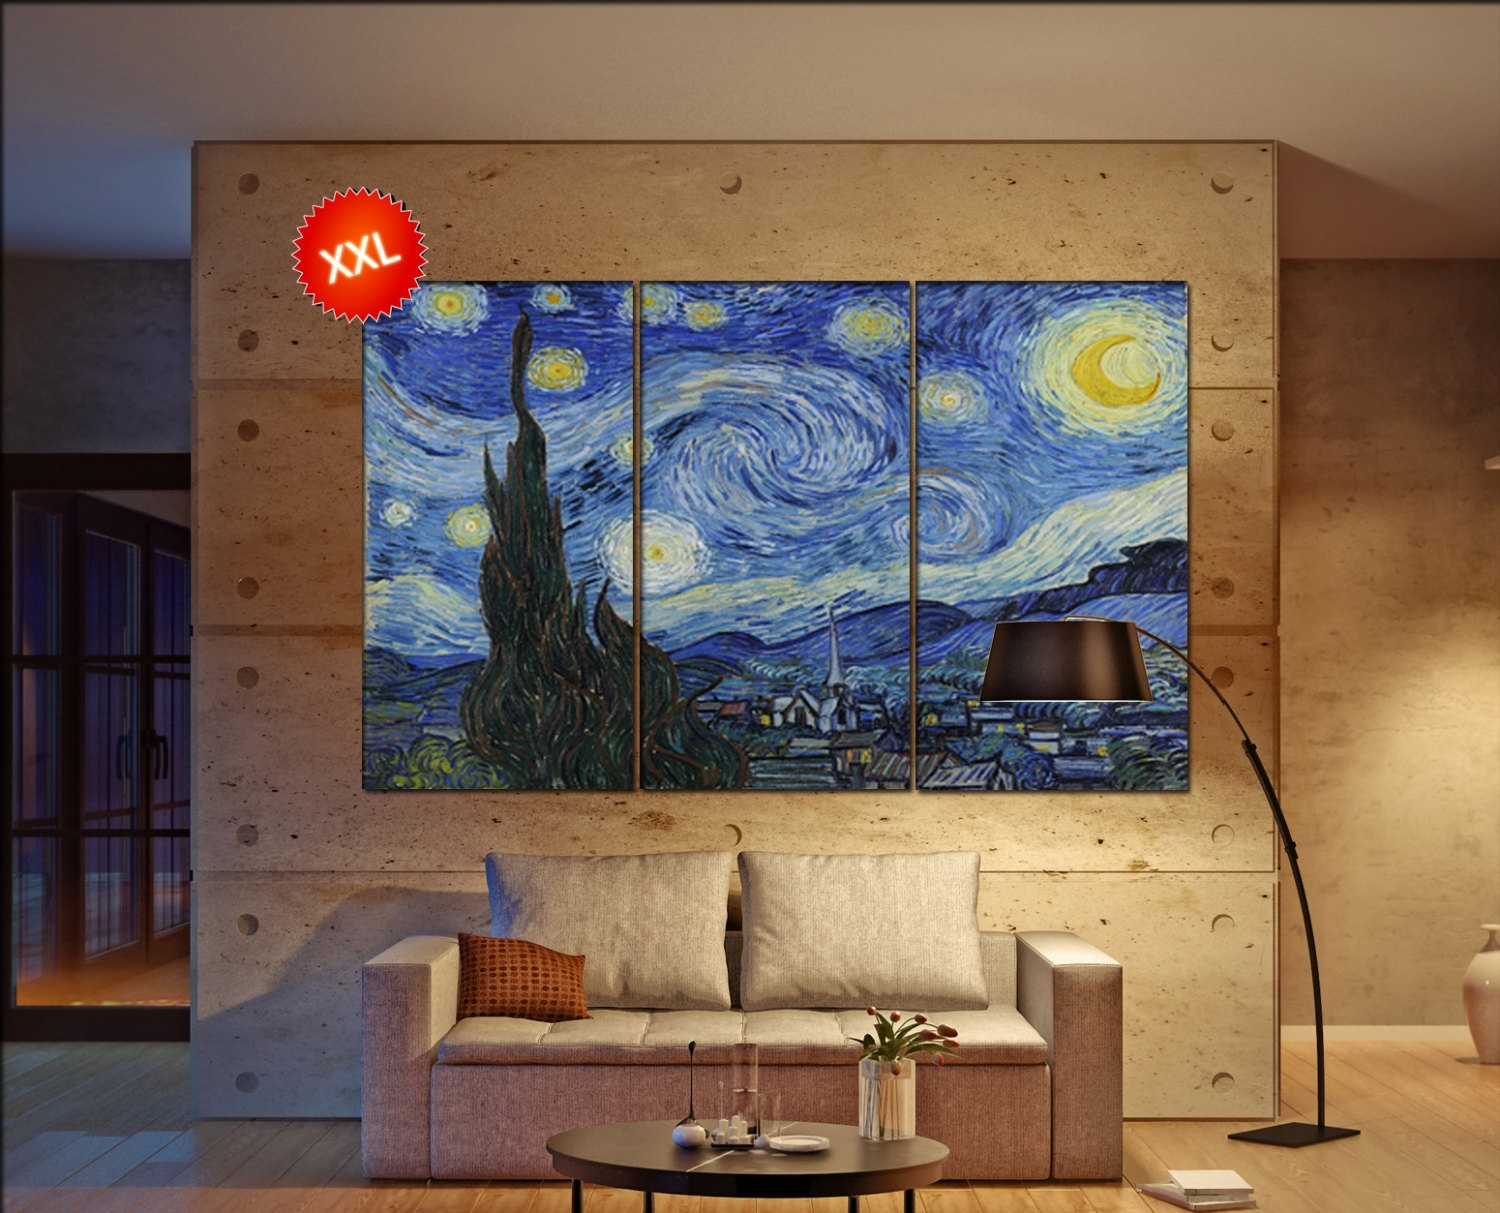 Large 3 Or 5 Panels / Boards Wrapped Stretched Canvas Wall Art Throughout Best And Newest Vincent Van Gogh Wall Art (View 11 of 20)